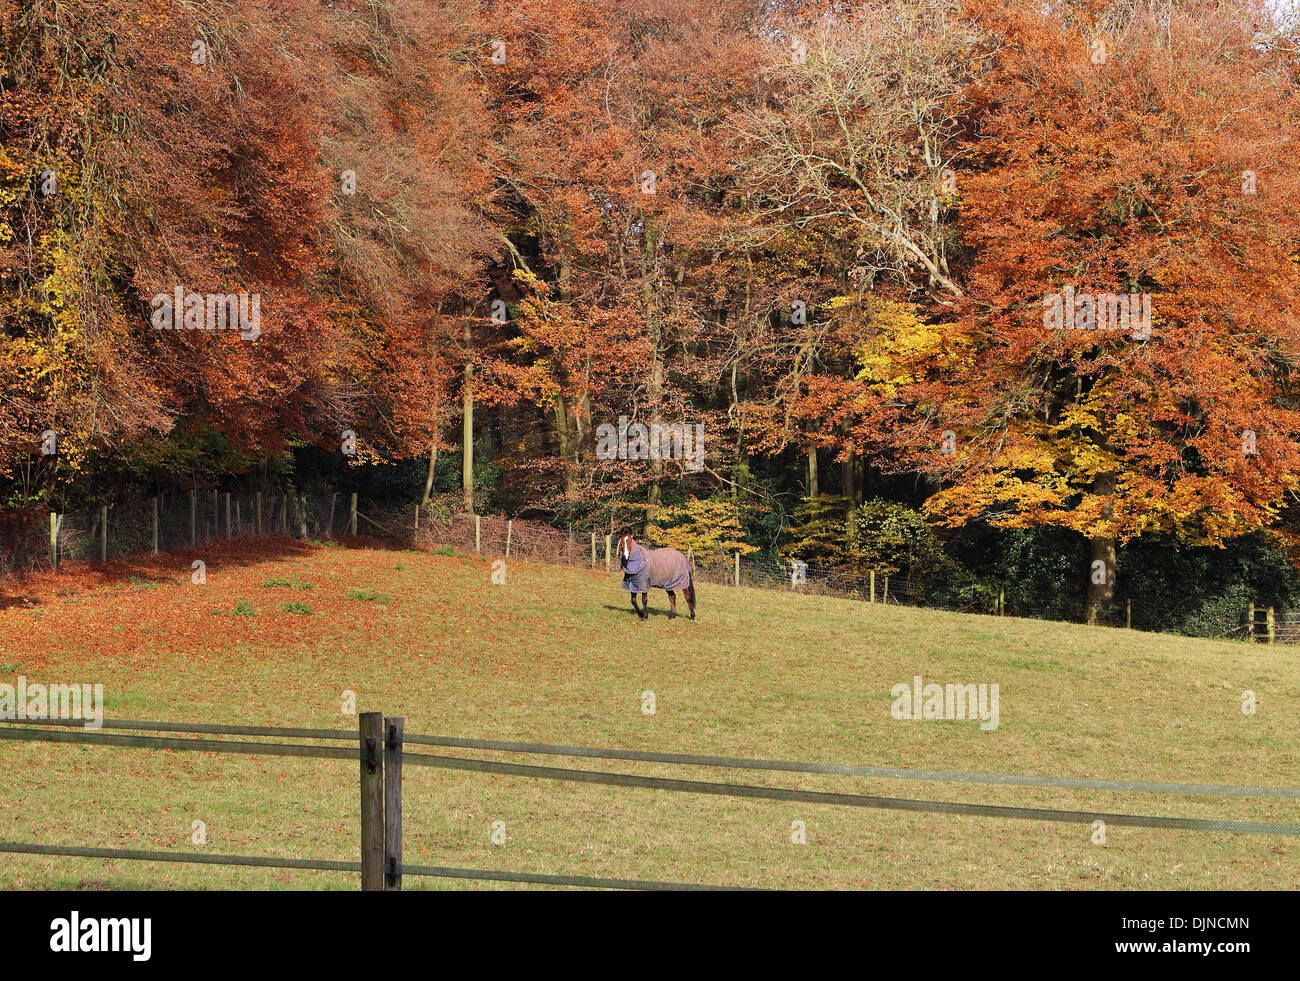 Bay Horse grazing in an english meadow in the Chiltern Hills with trees in Autumn colours - Stock Image